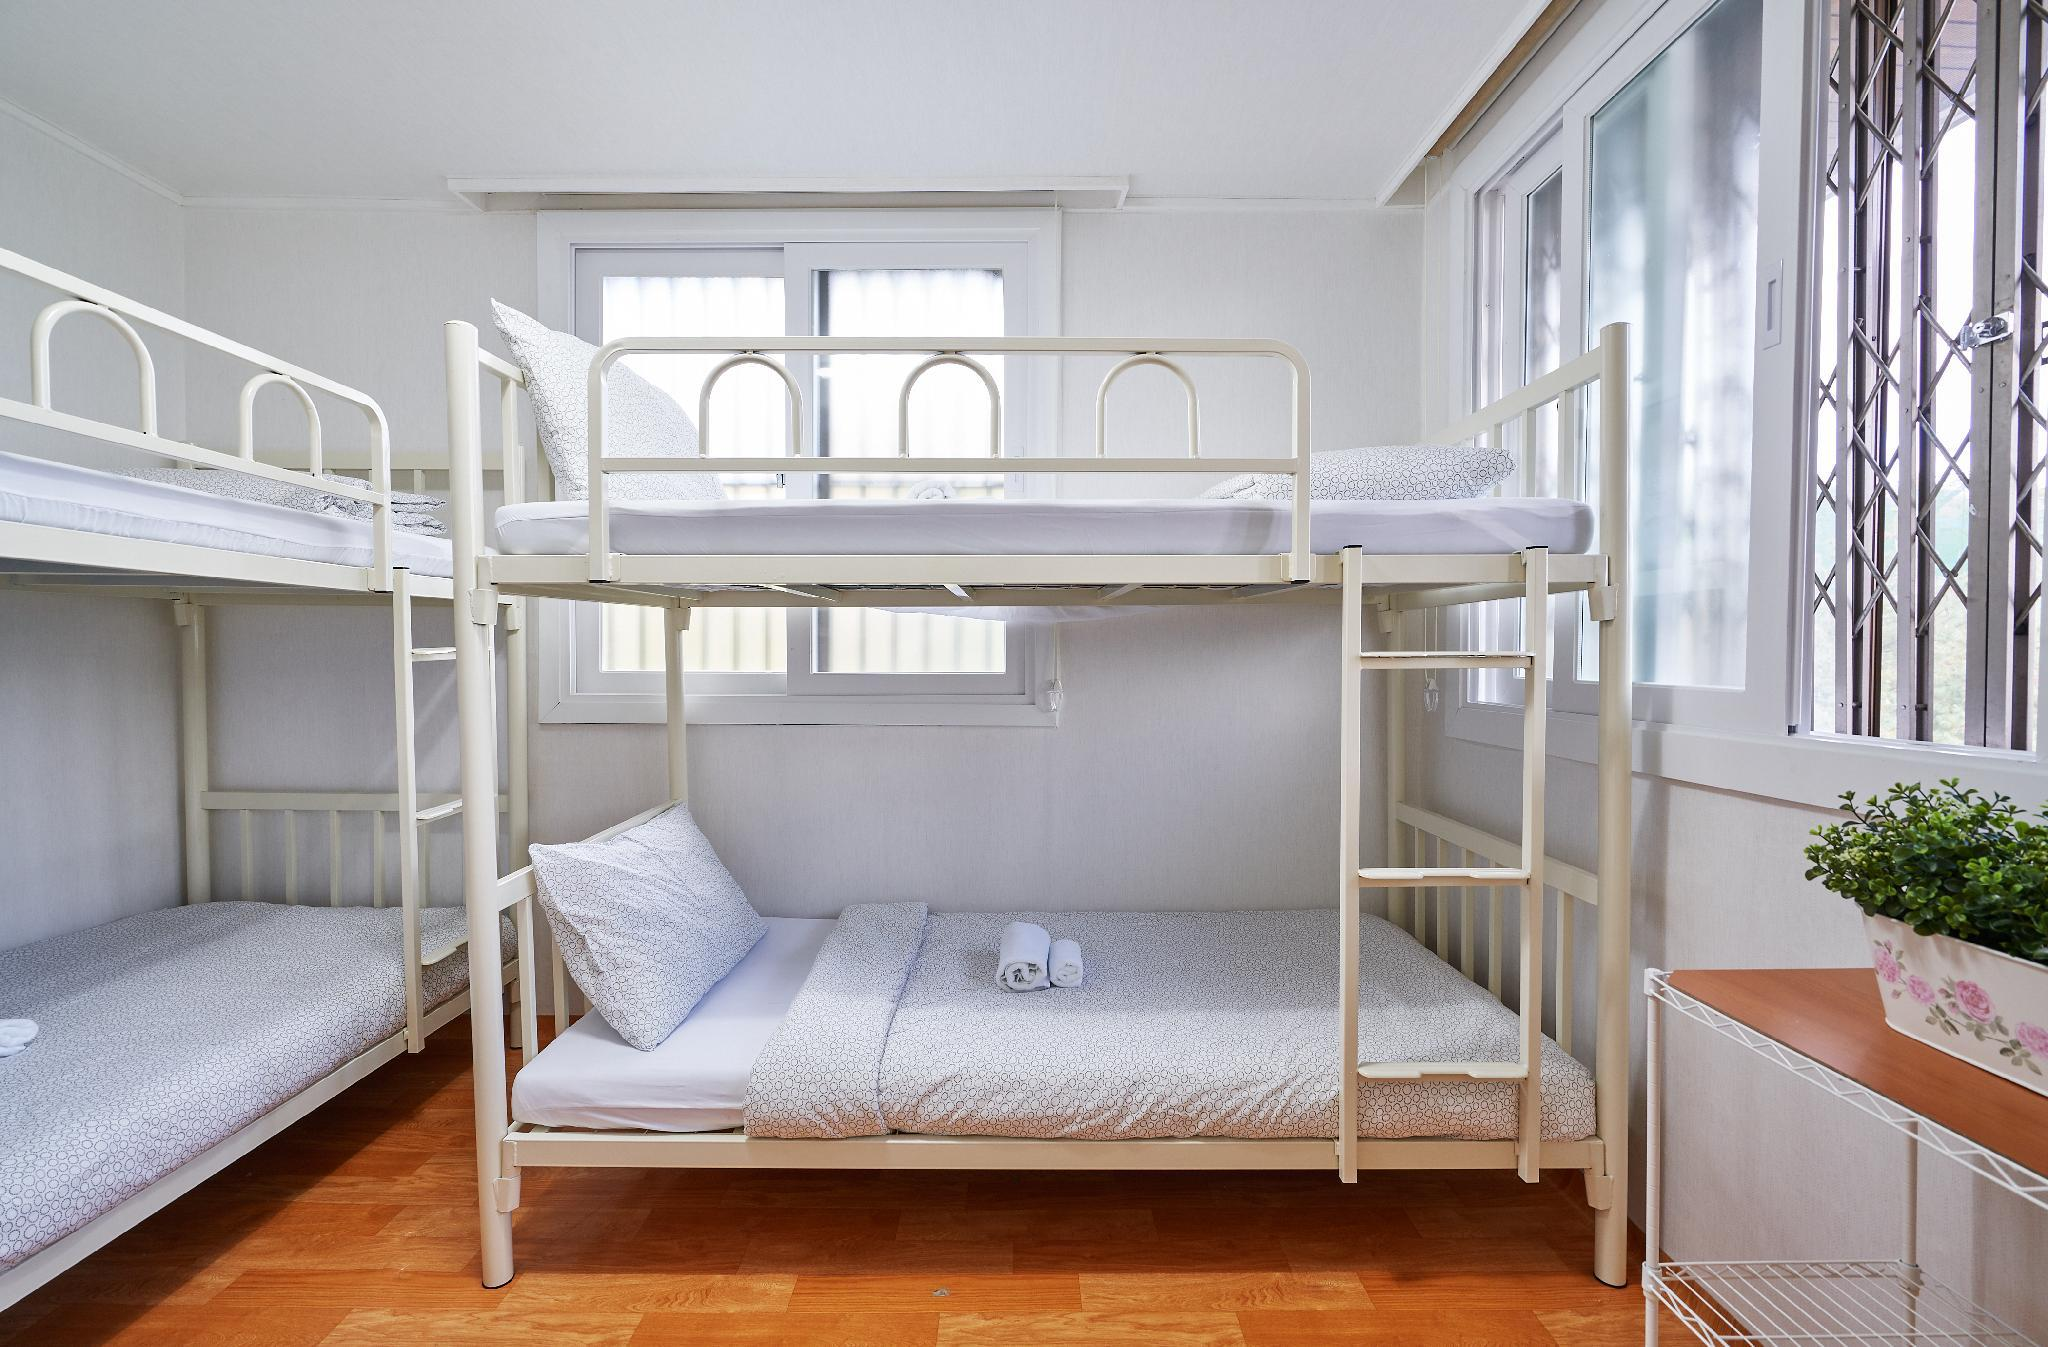 Seoul Best Stay 6 Bed Female Only  Bunk Bed  3